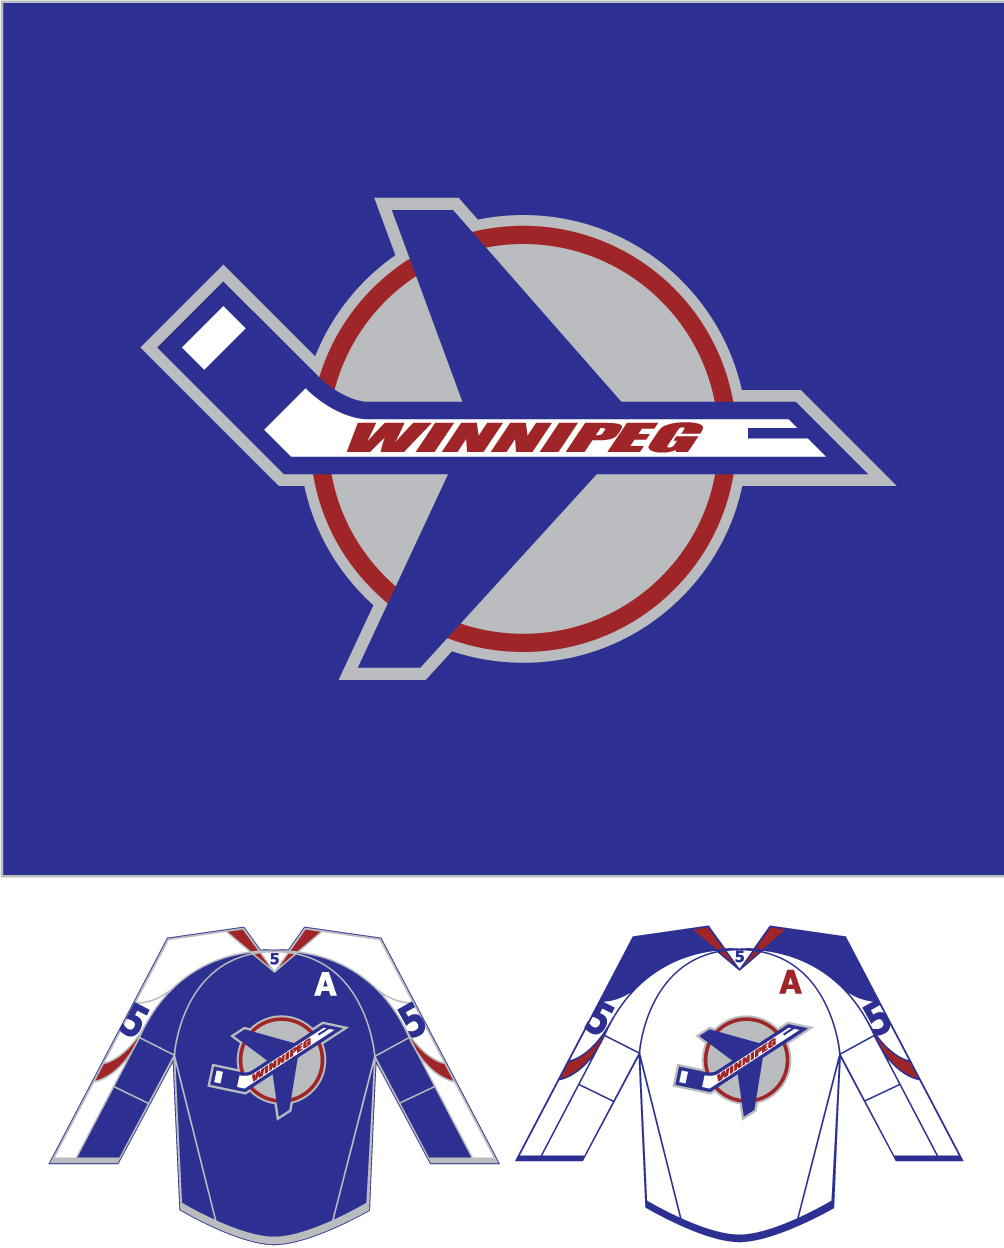 Logo Design by Columbia - Entry No. 267 in the Logo Design Contest Winnipeg Jets Logo Design Contest.